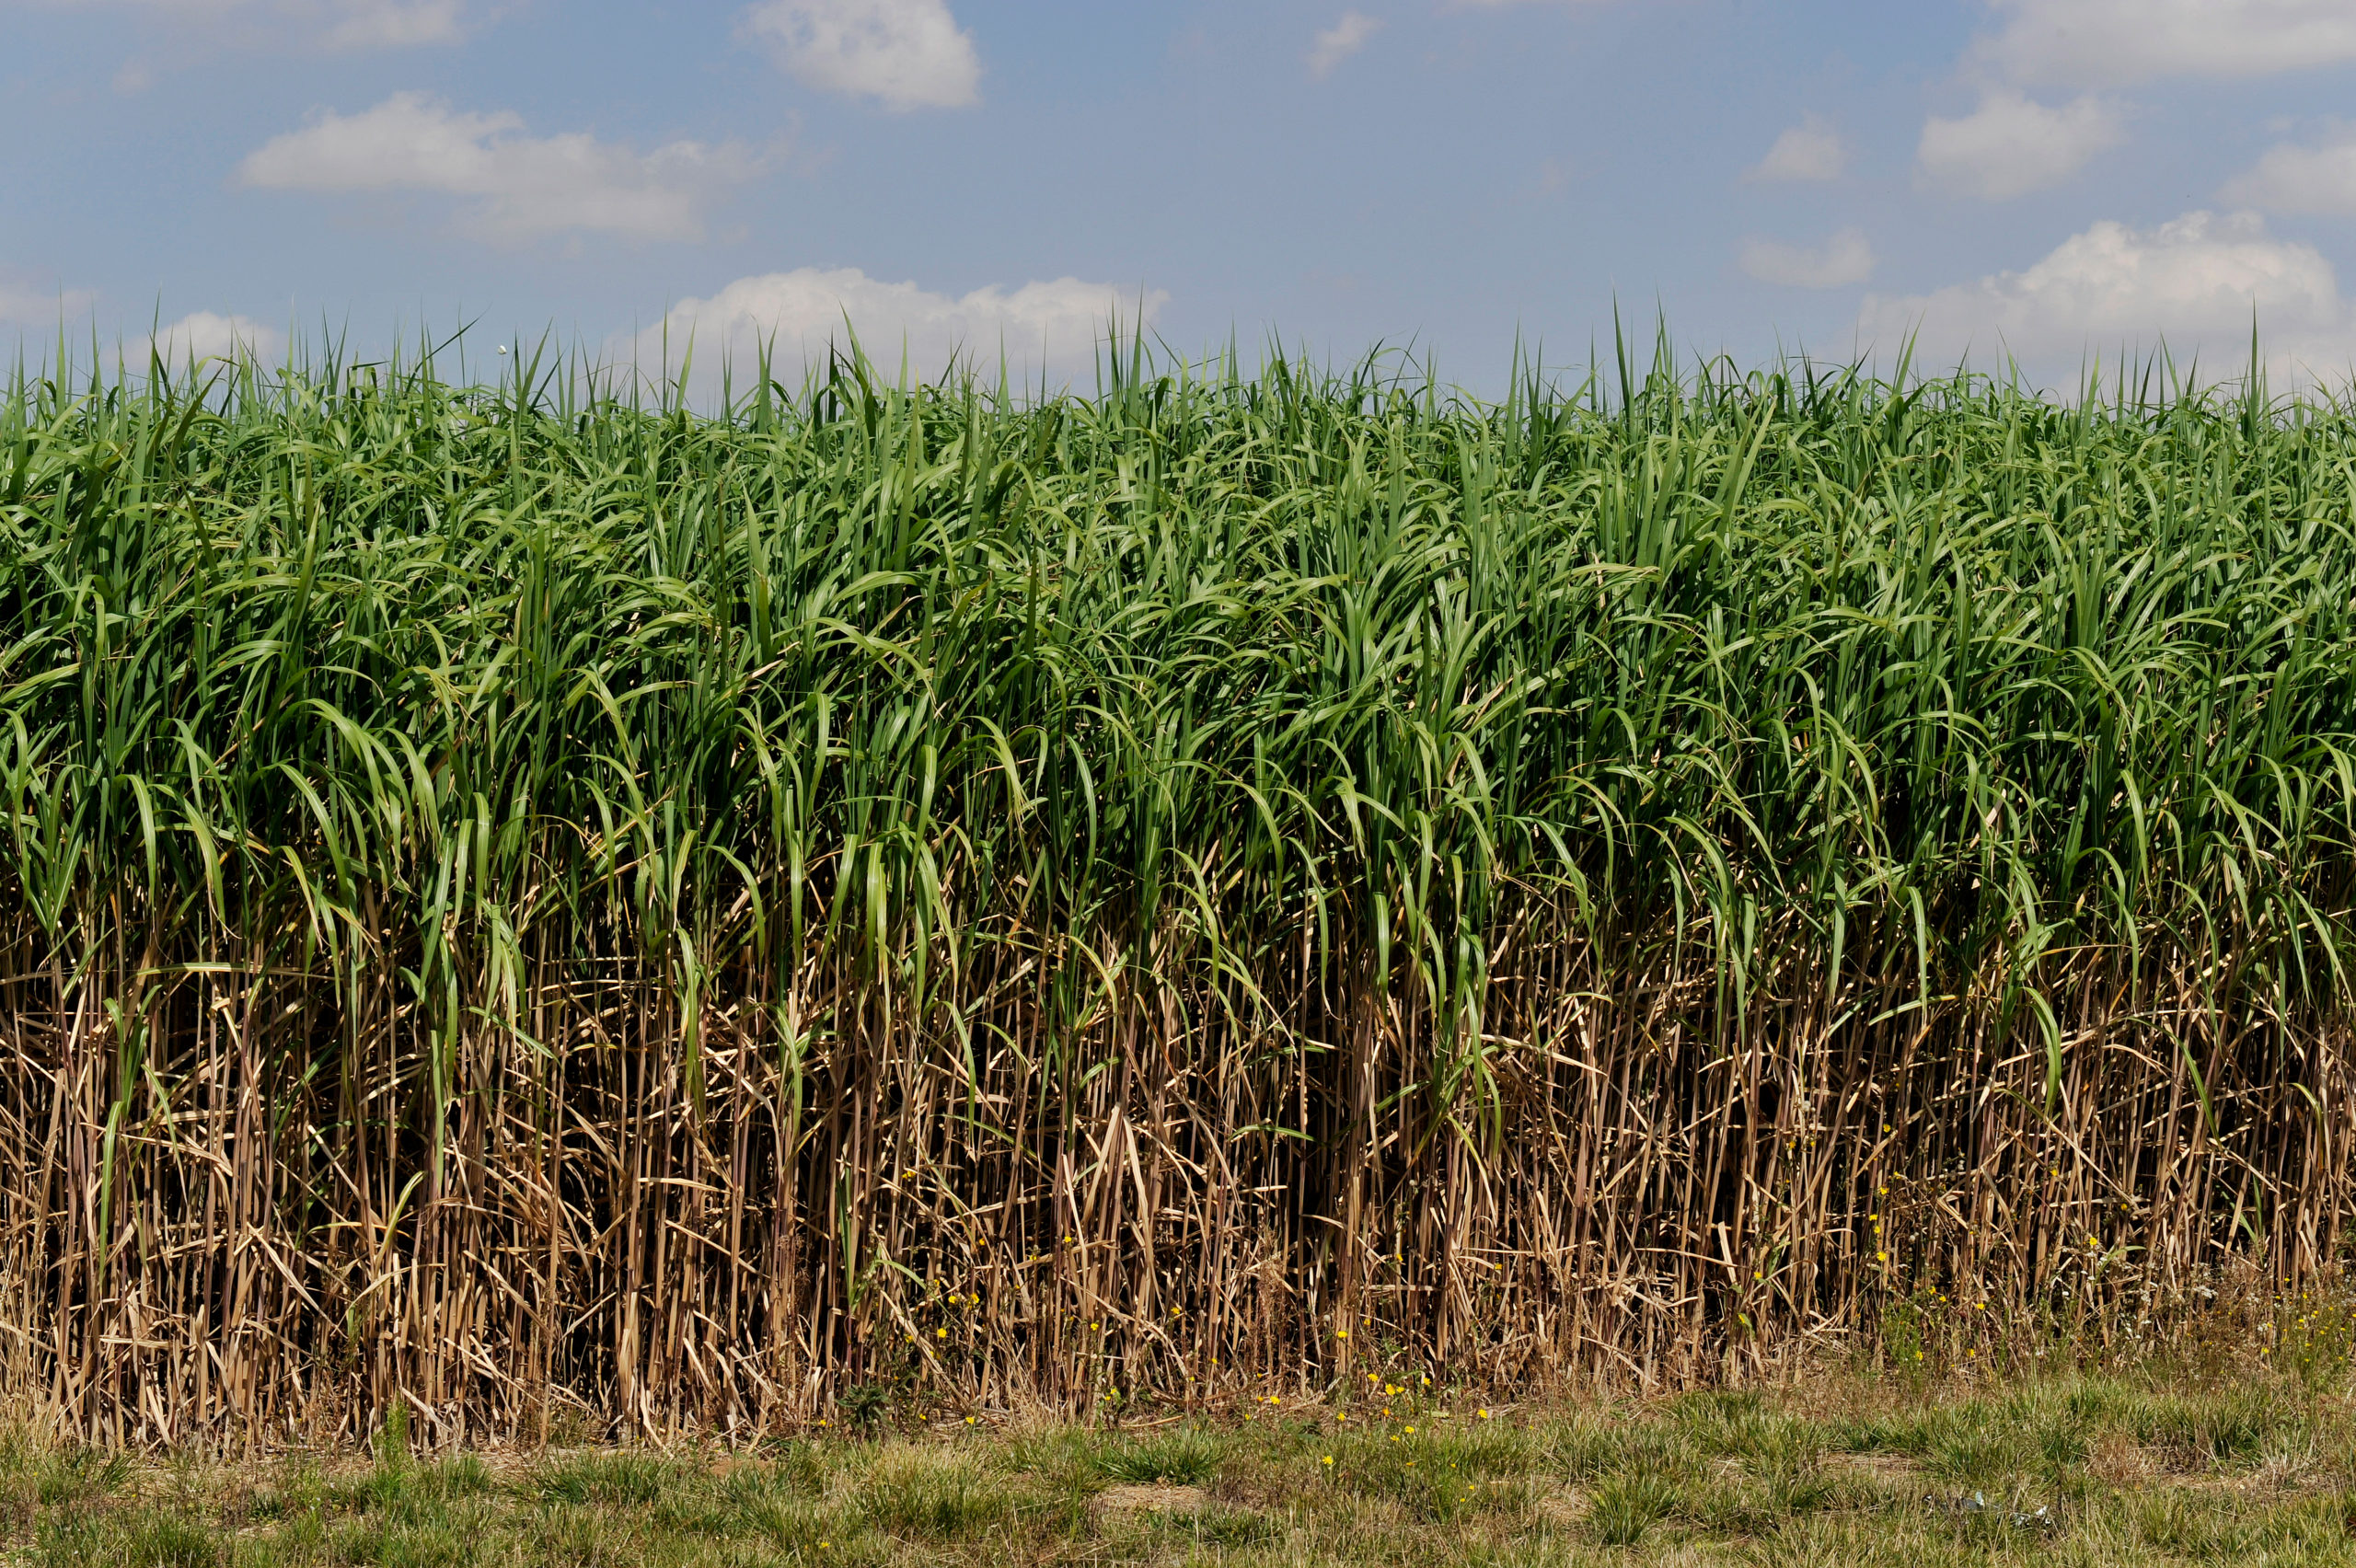 Video: Miscanthus study